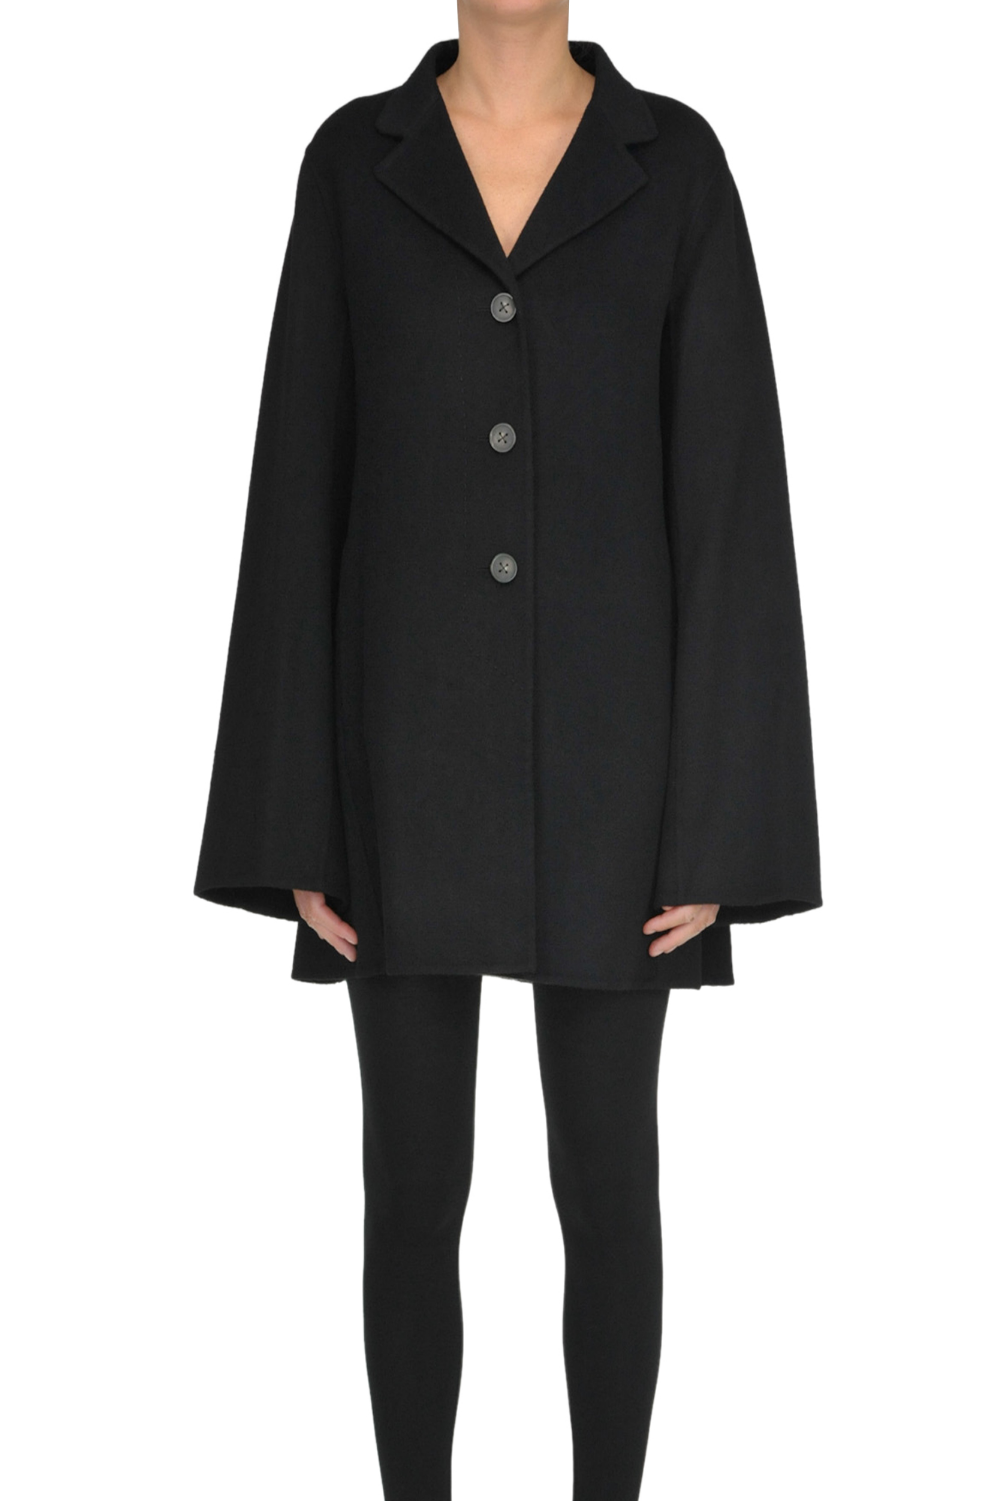 acne outlet online